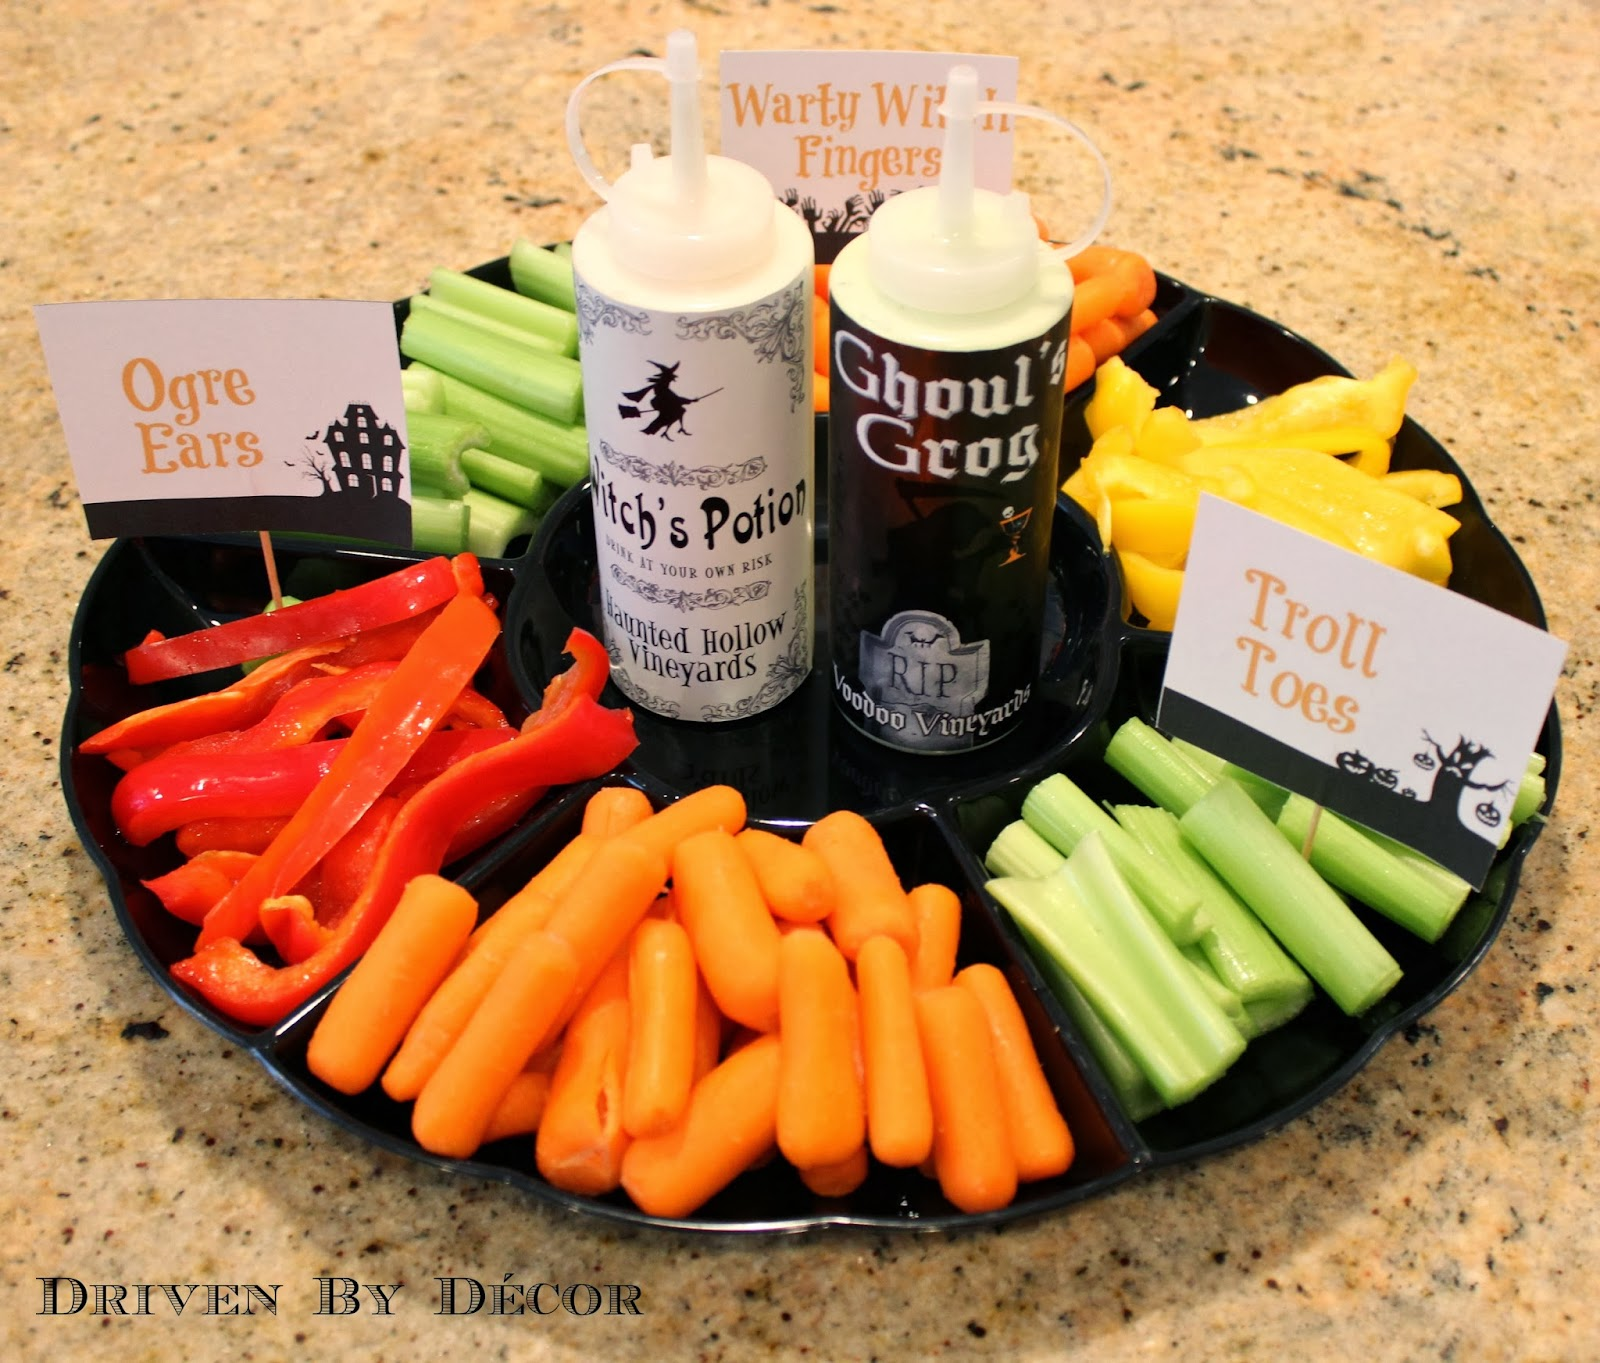 Halloween Vegetable Tray: A Healthy School